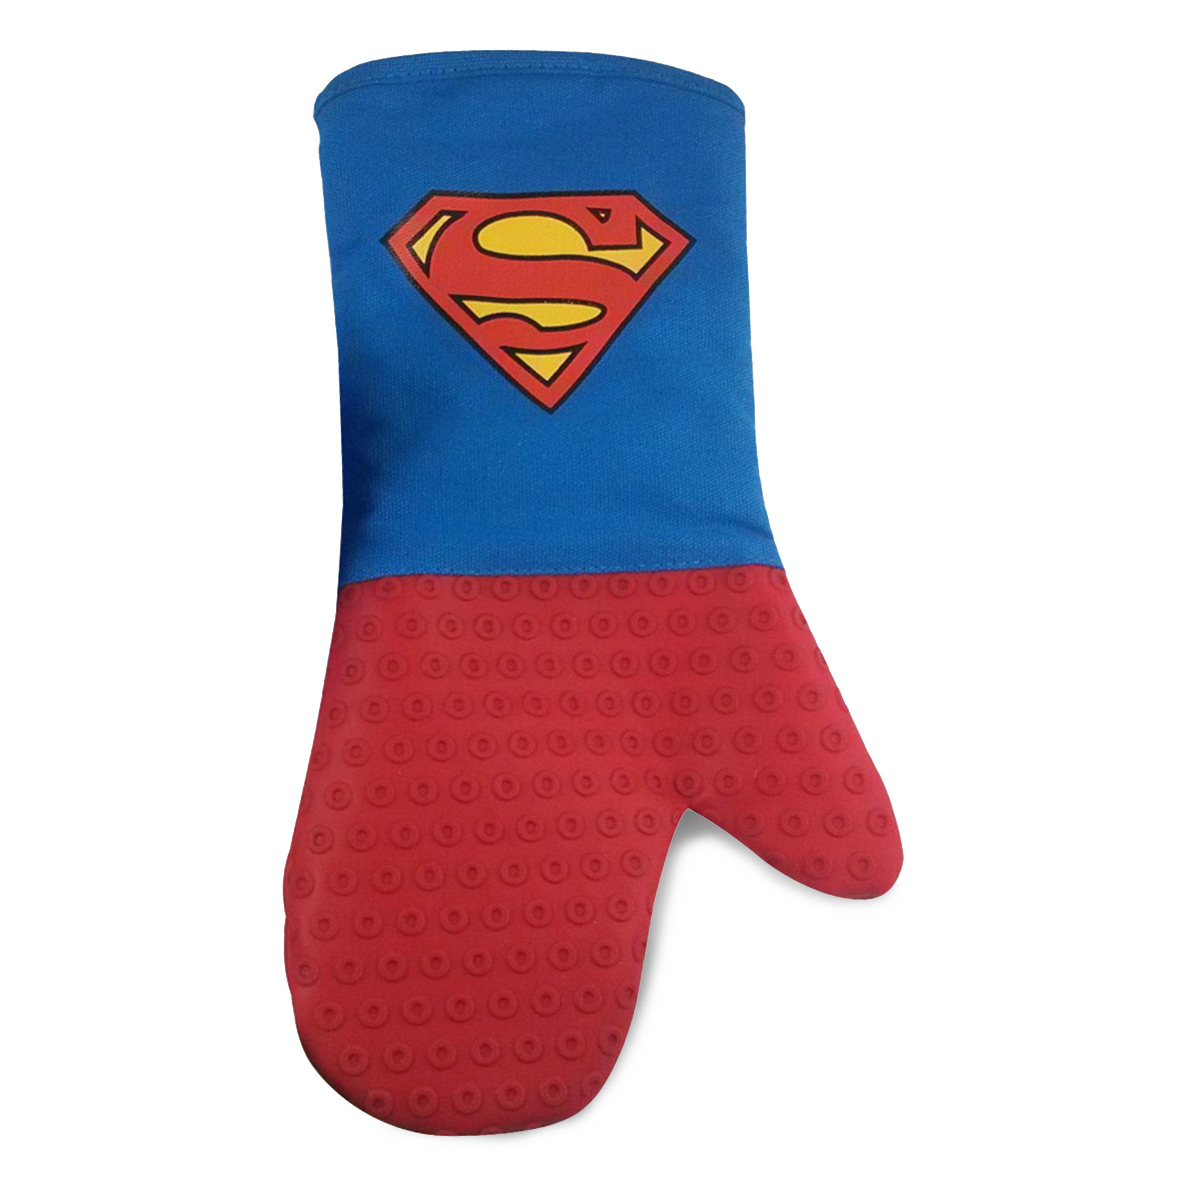 Luva de Forno Superman